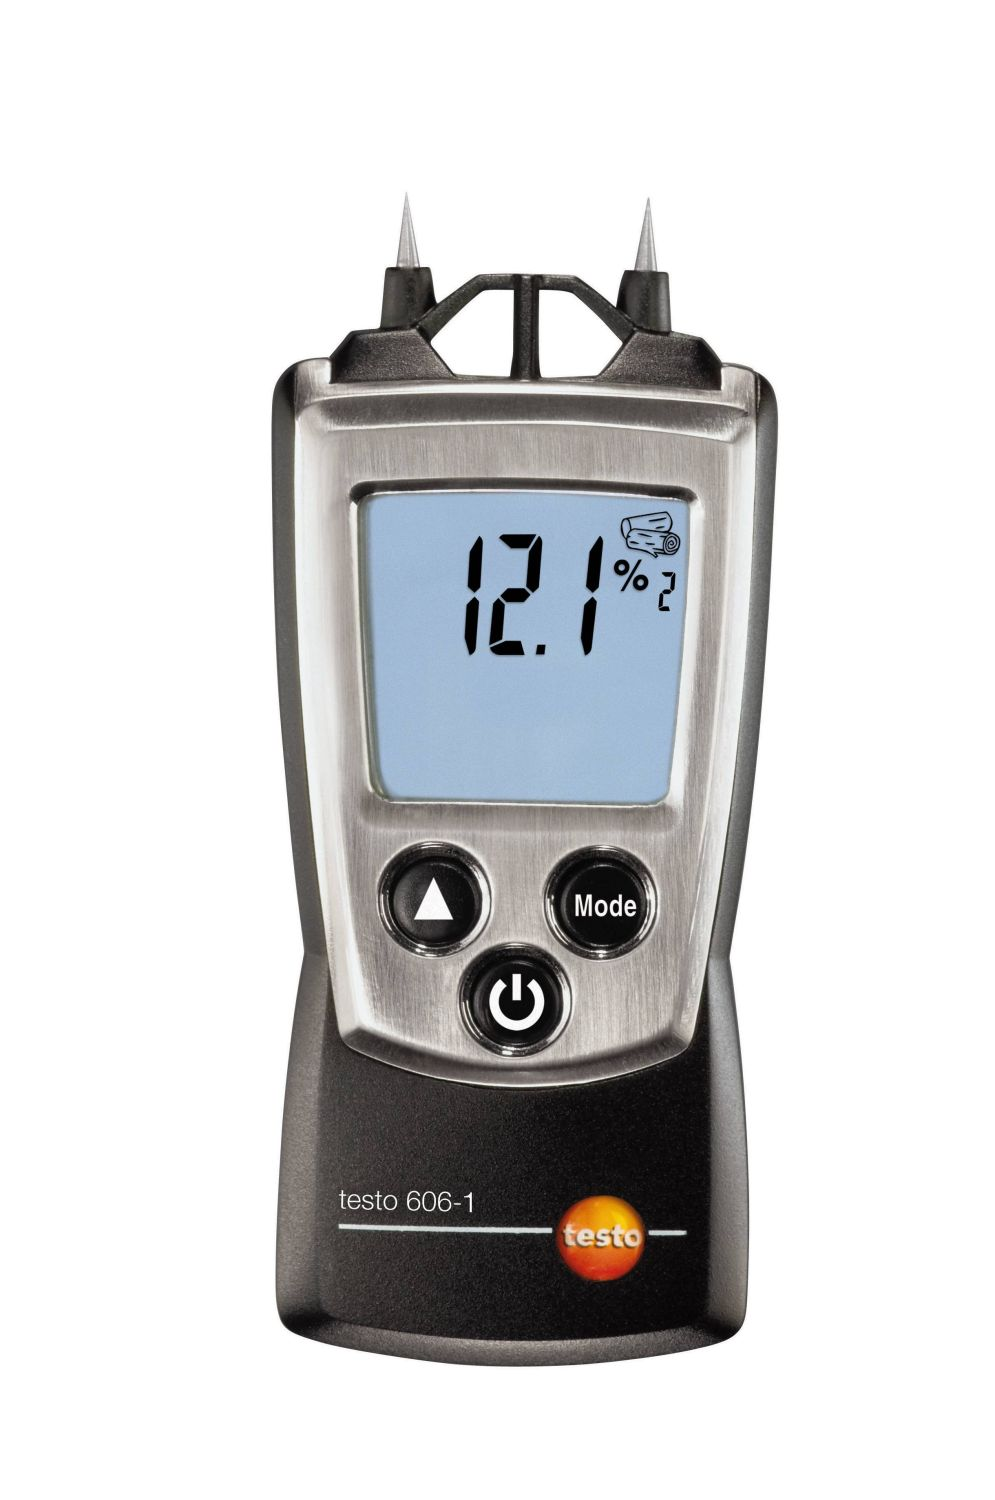 Testo 606-1 - Pocket Sized Moisture Meter For Material Moisture